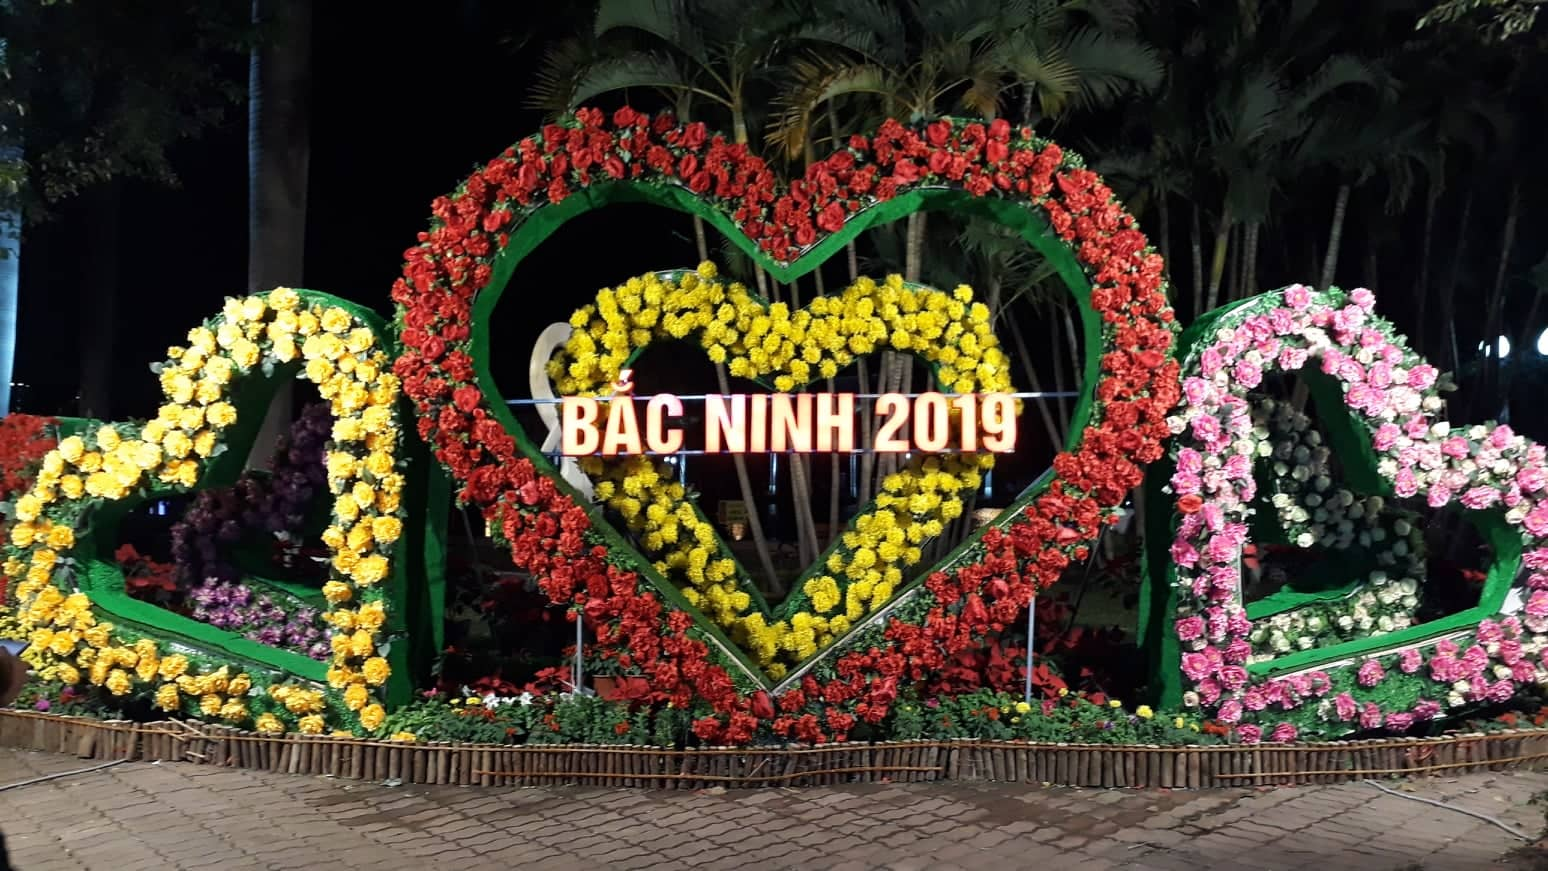 Sparkling festival atmosphere in Bac Ninh province